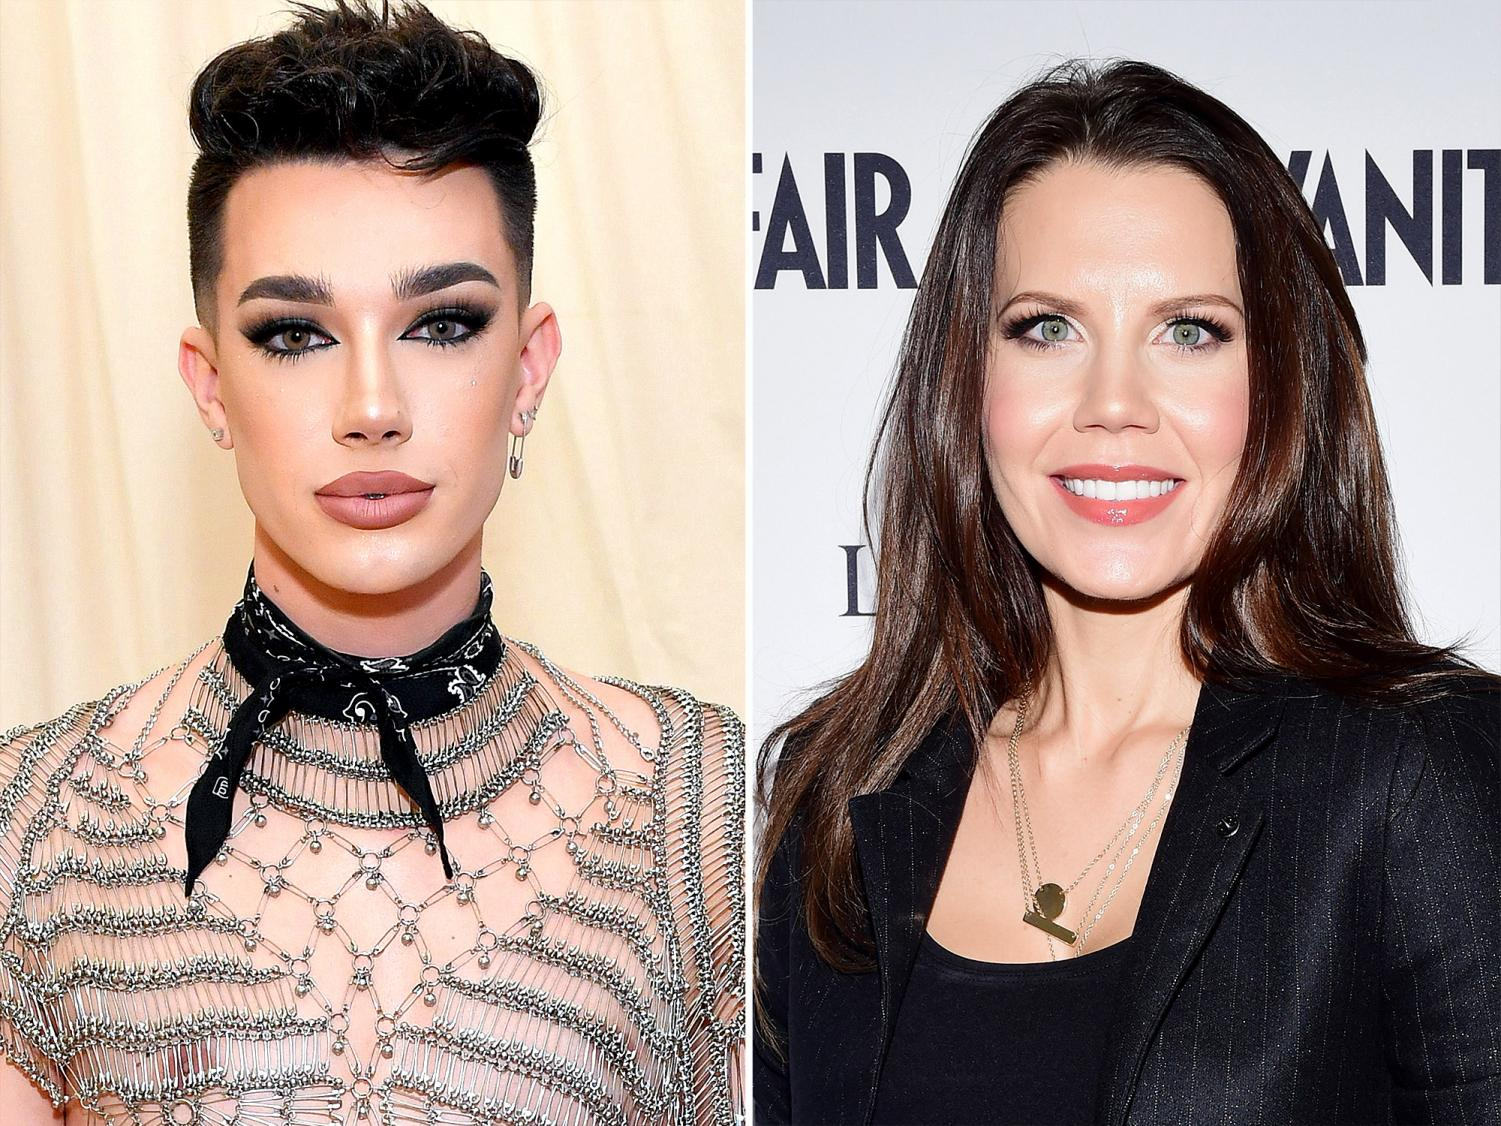 Left, James Charles. Right, Tati Westbrook. Photo credit: People